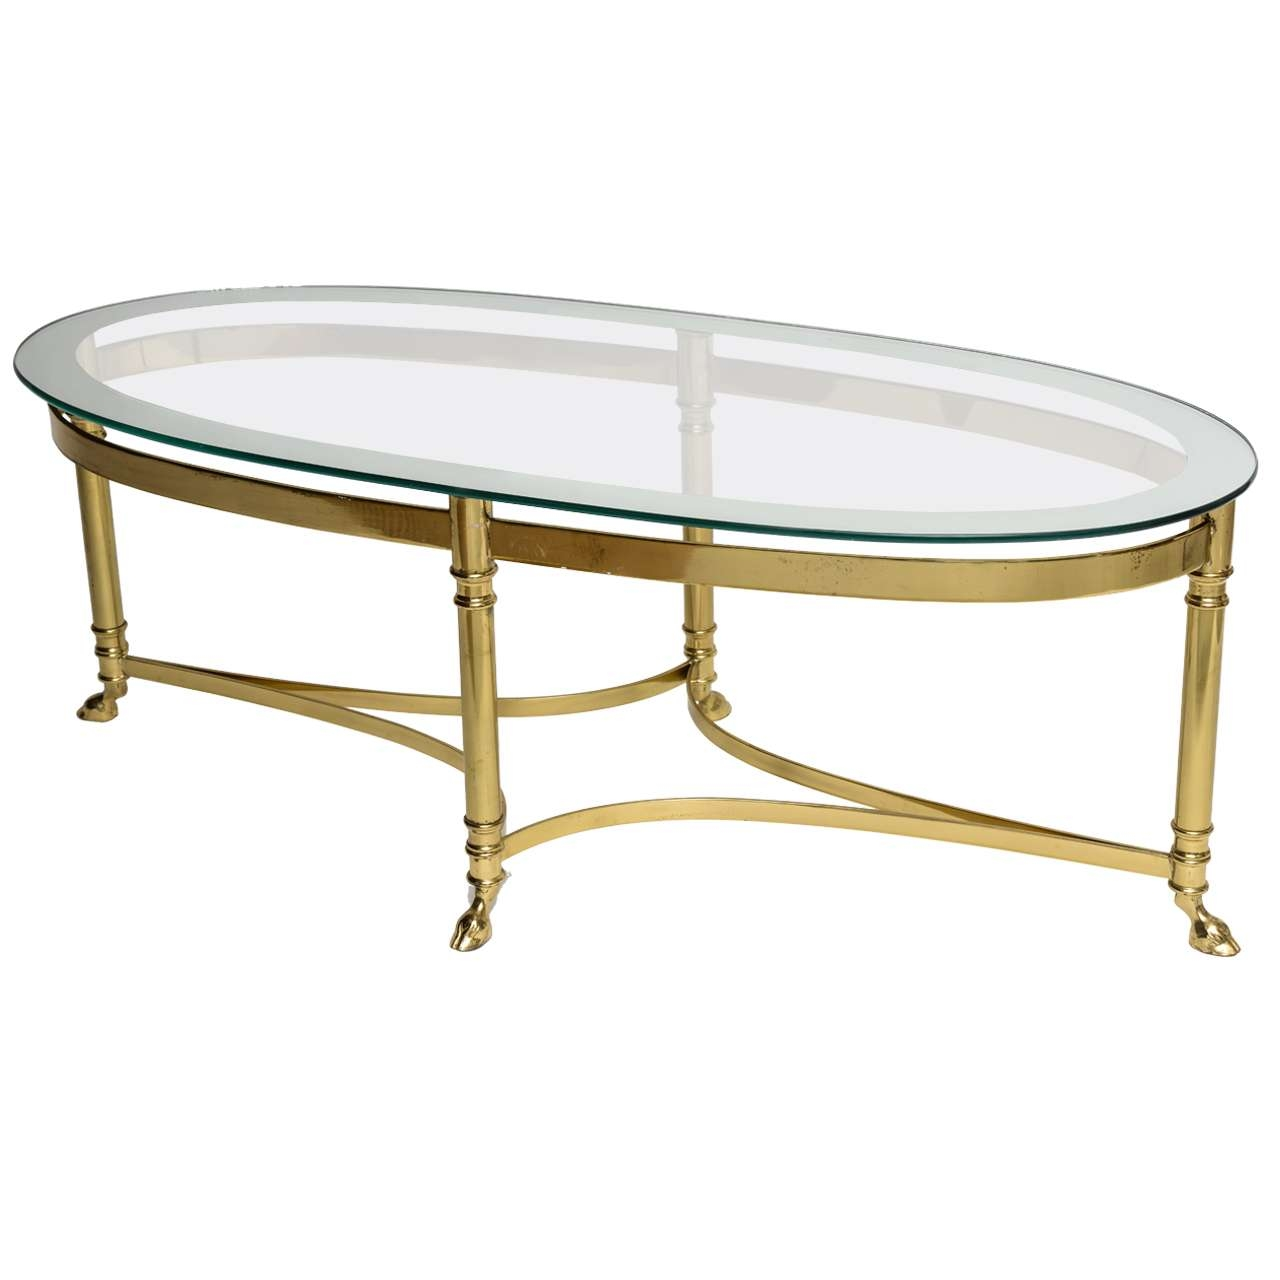 Coffee Tables Ideas: Stunning Glass Oval Coffee Table Living Room Intended For Current Antique Glass Coffee Tables (View 6 of 20)